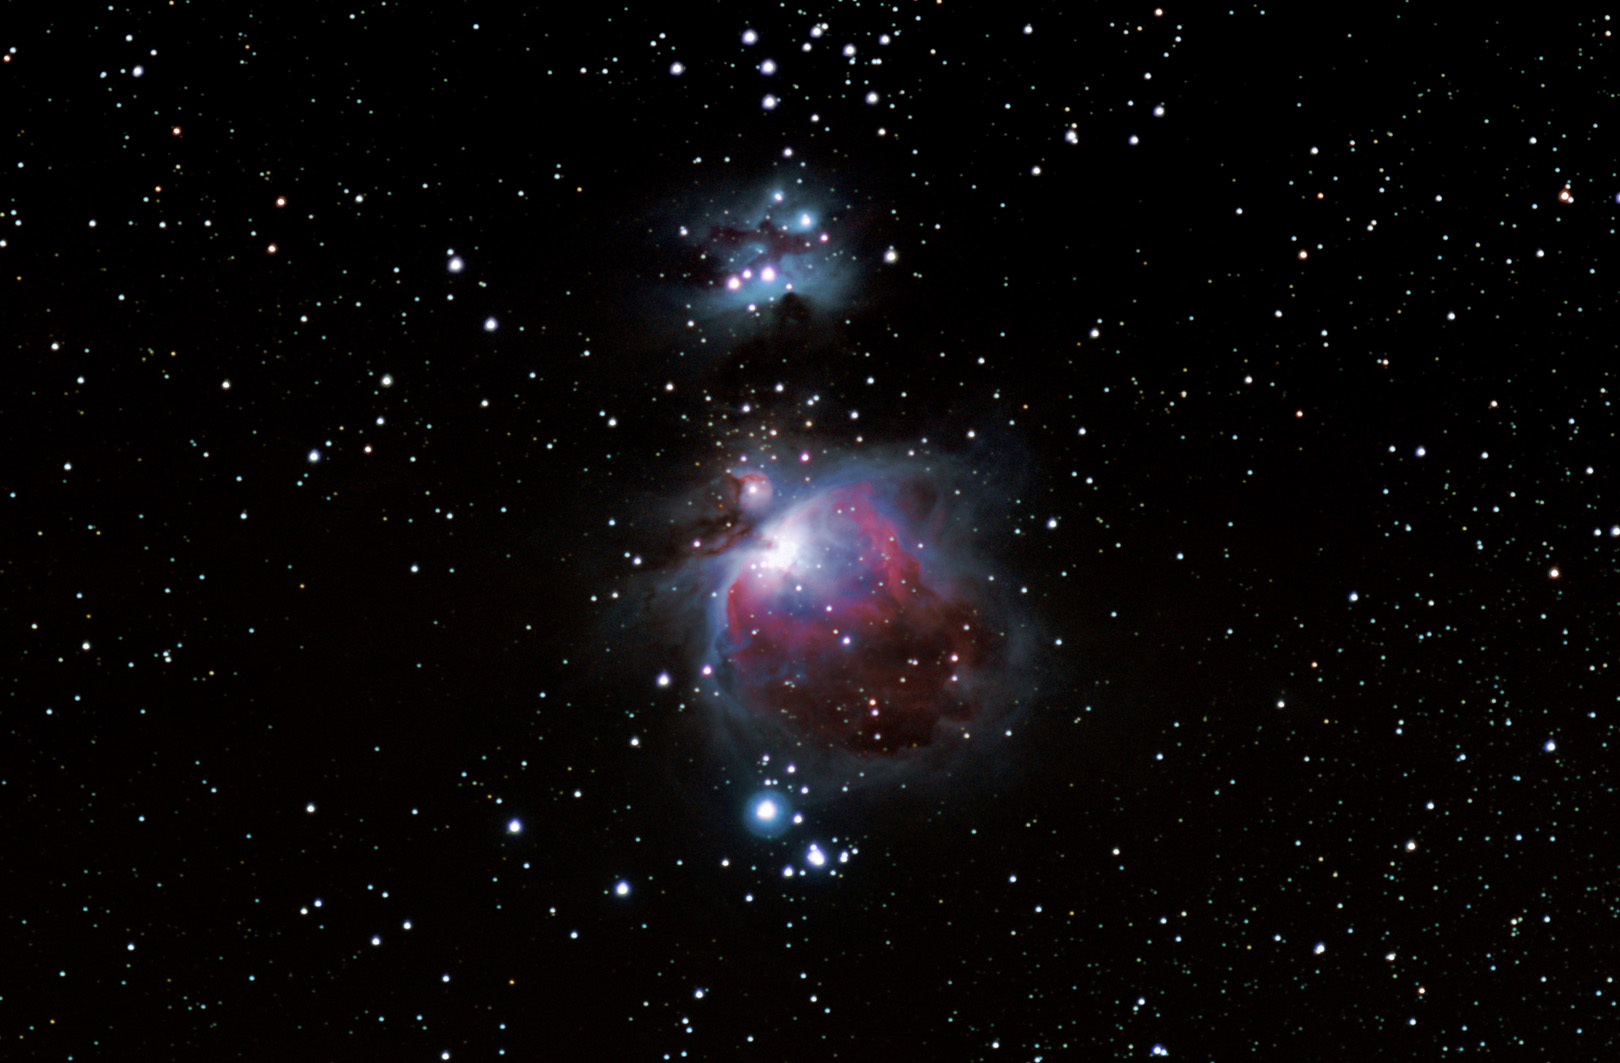 Orion nebula taken with Nikon D7000 at 180mm f2.8